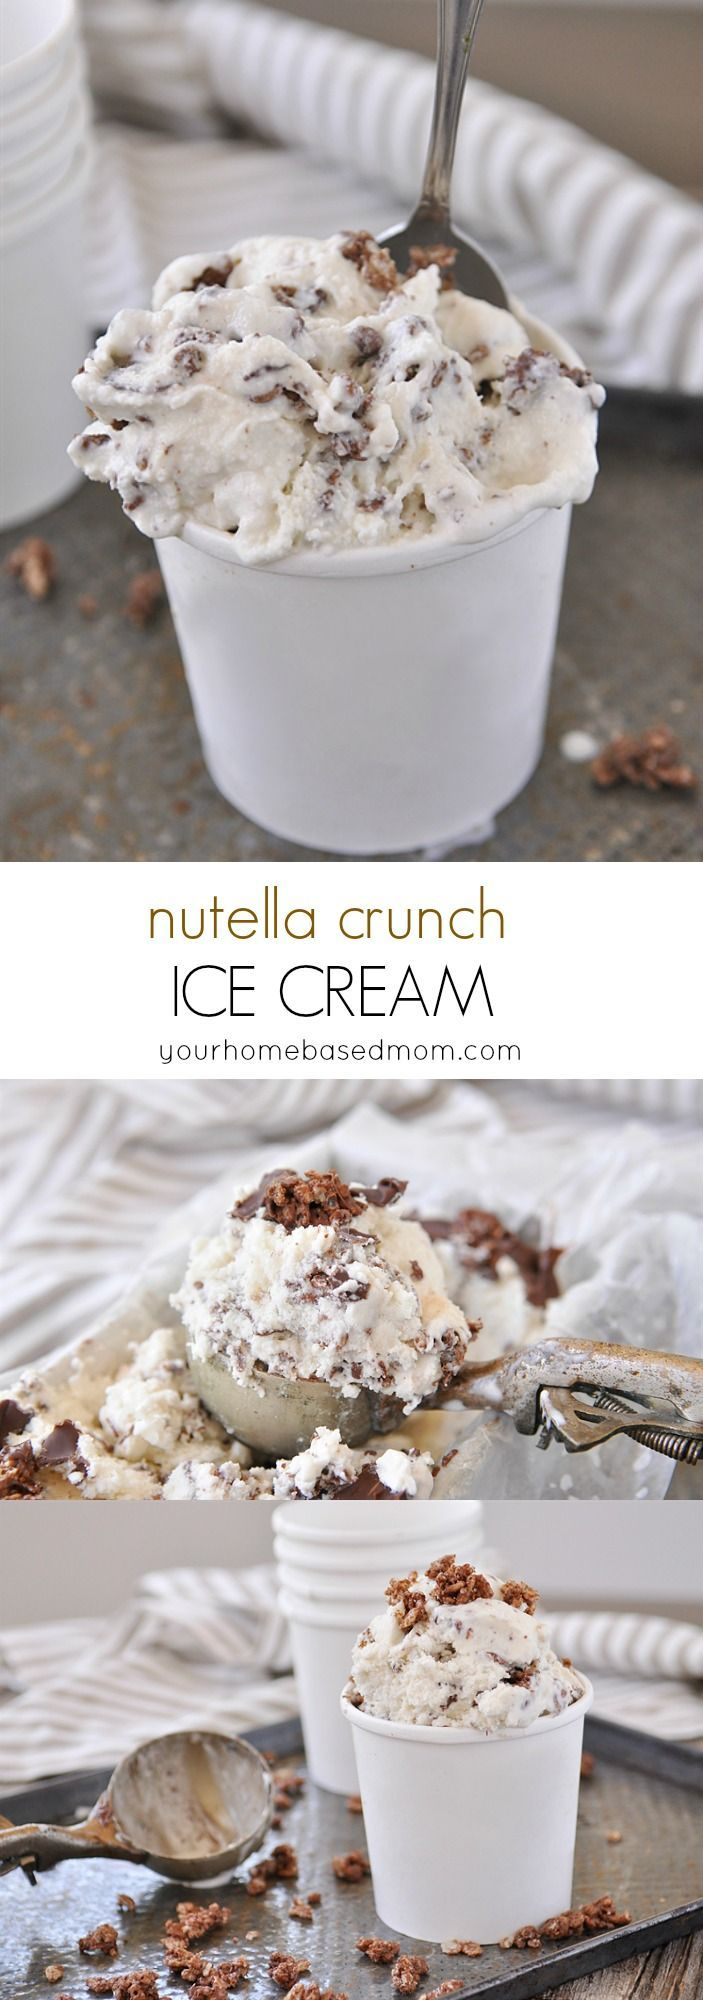 Crunch Ice Cream Nutella Crunch Ice CreamNutella Crunch Ice Cream